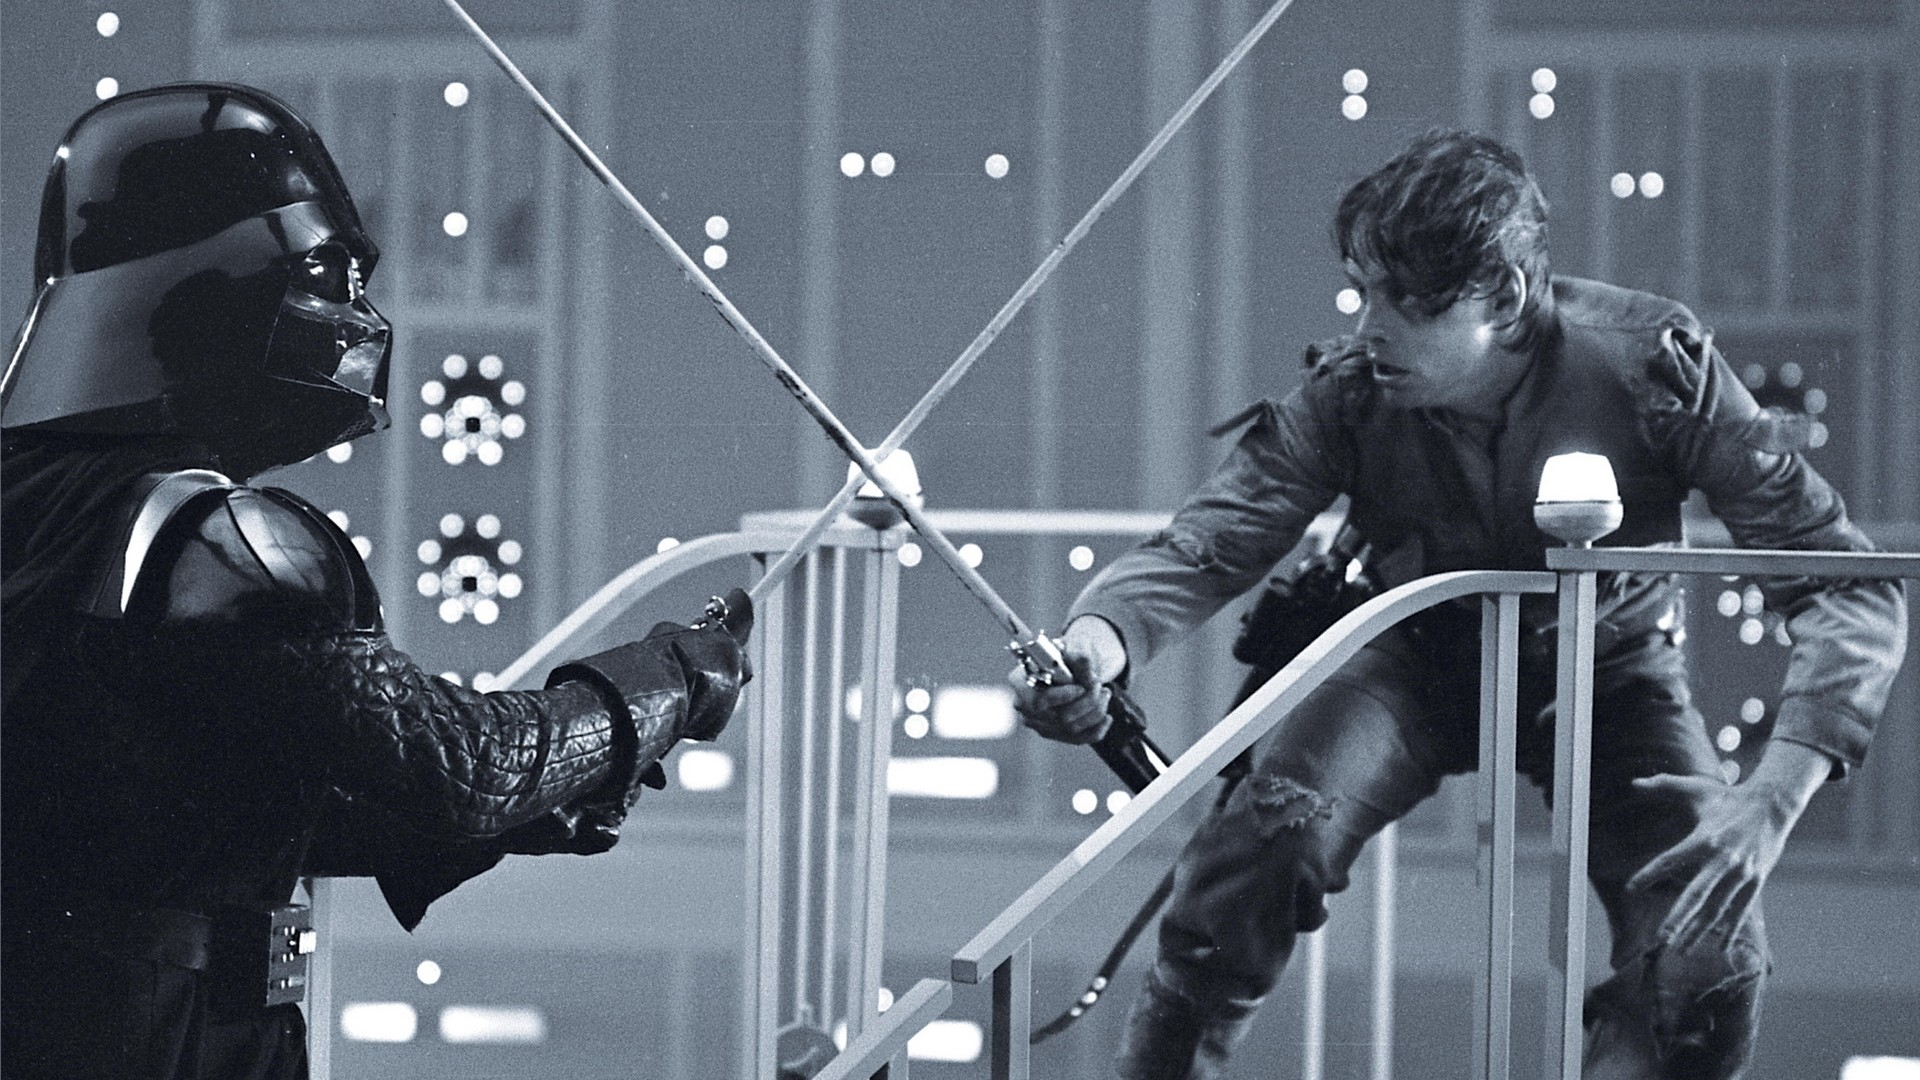 Luke-skywalker-vs-darth-vader-black-and-white-lightsaber-battle-wallpaper-wp3408324